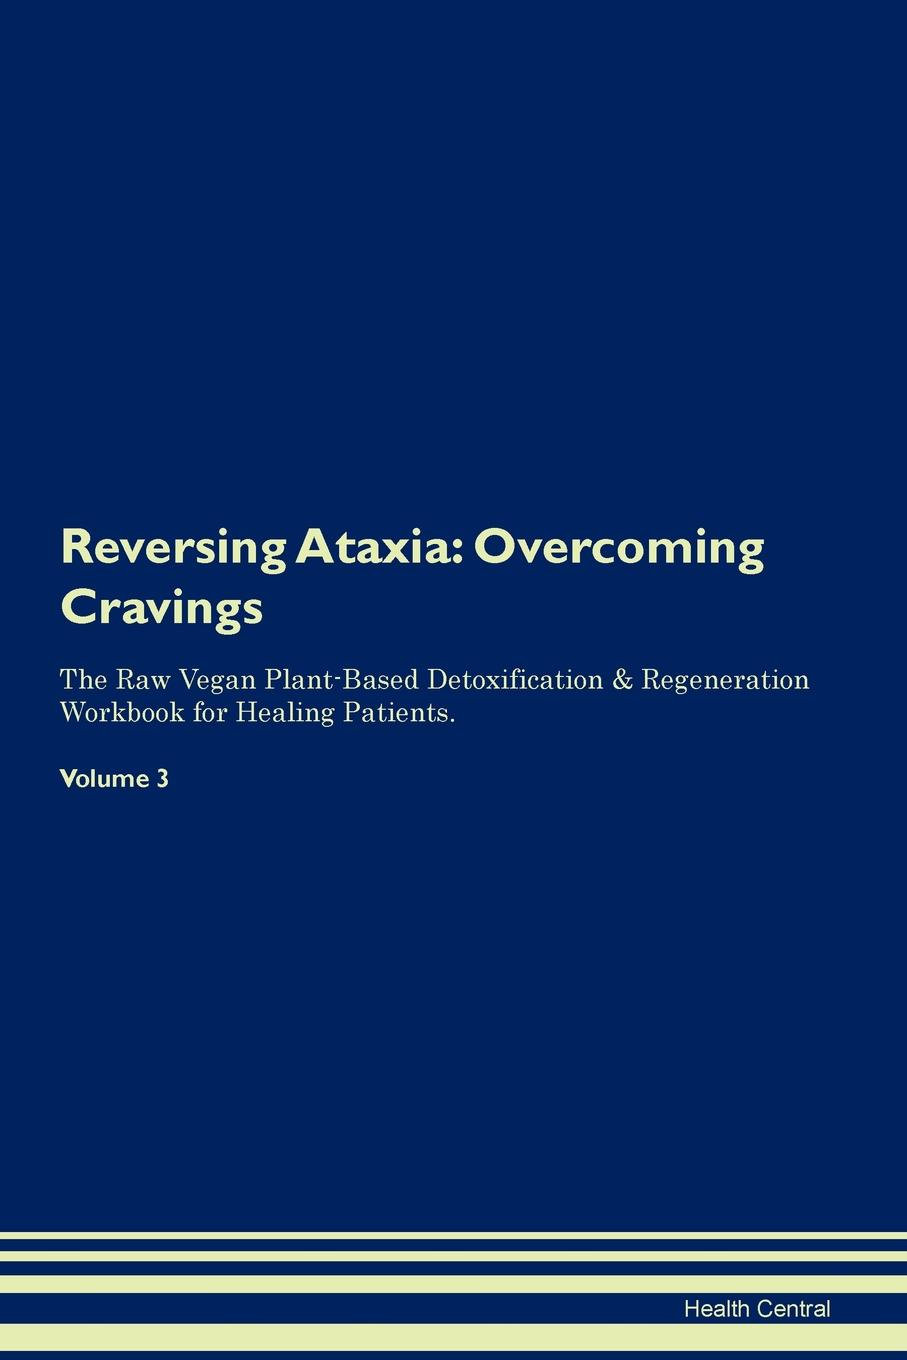 Фото - Health Central Reversing Ataxia. Overcoming Cravings The Raw Vegan Plant-Based Detoxification & Regeneration Workbook for Healing Patients. Volume 3 health central reversing spinocerebellar ataxia overcoming cravings the raw vegan plant based detoxification